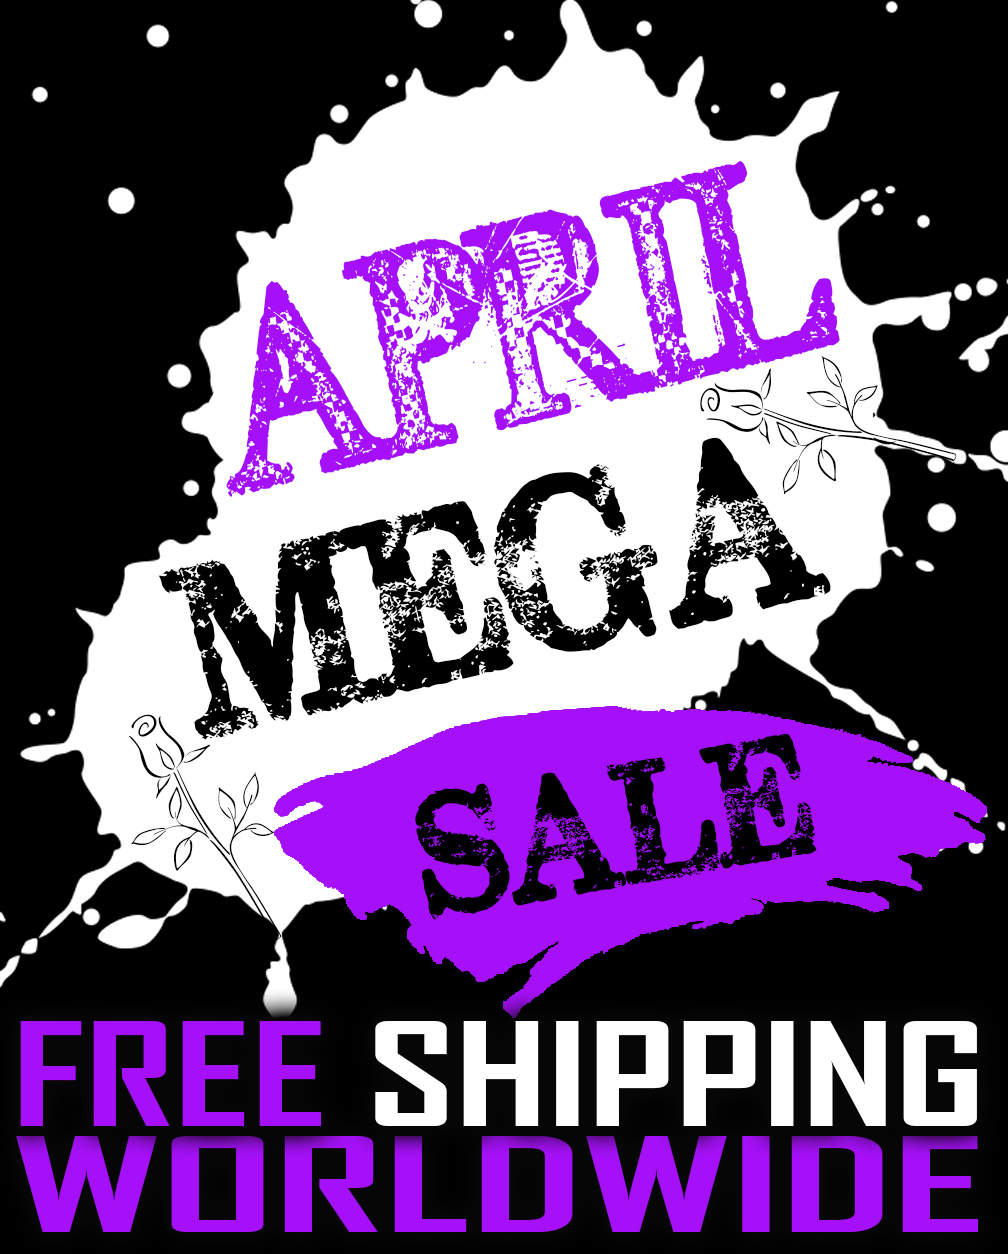 april-mega-sale-free-worldwide-shipping.jpg